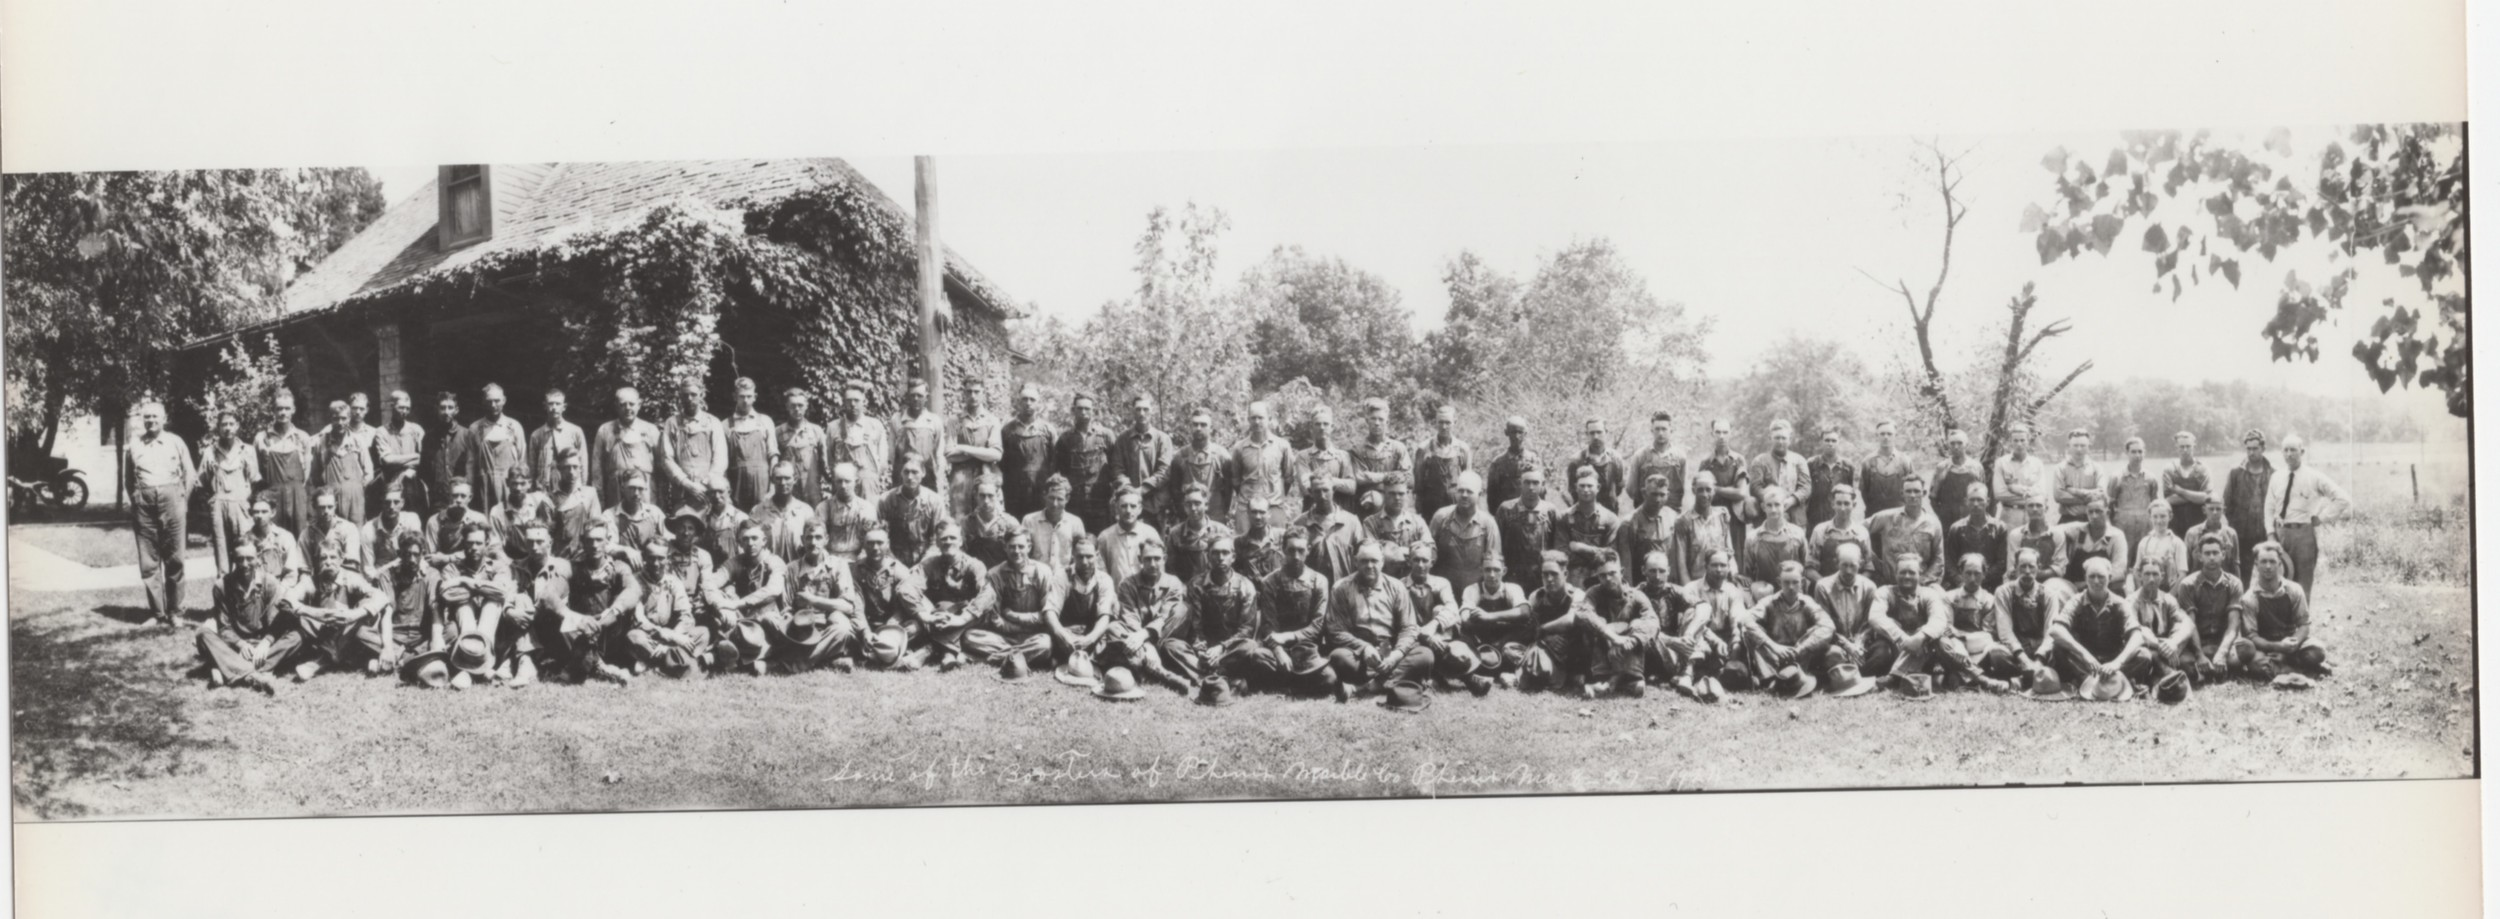 """""""Some of the Boosters of Phenix Marble Co, Phenix, MO 8-27-1924"""""""